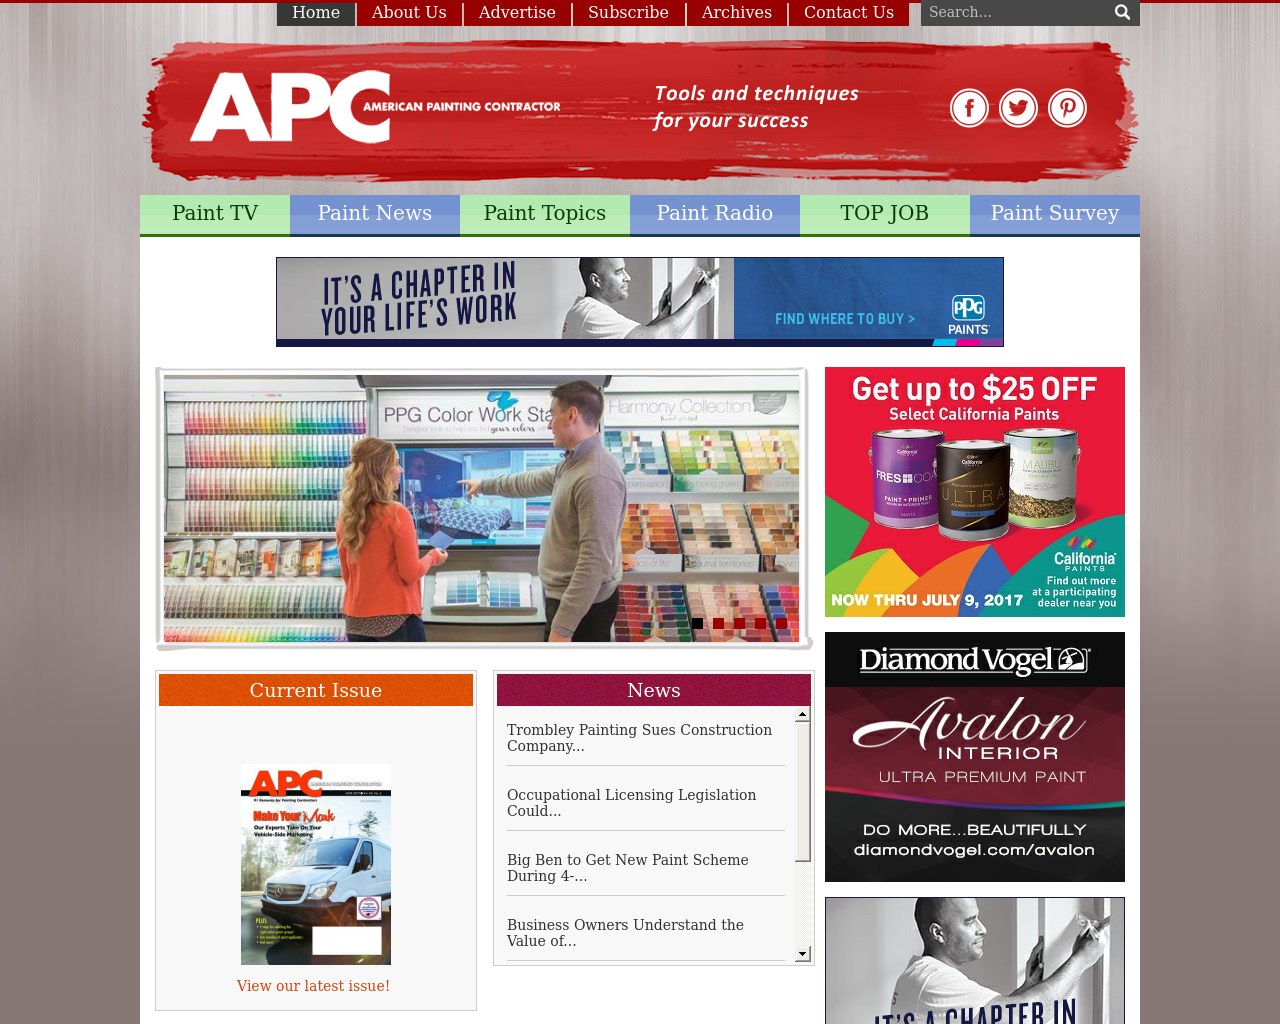 APC---American-Painting-Contractor-Advertising-Reviews-Pricing